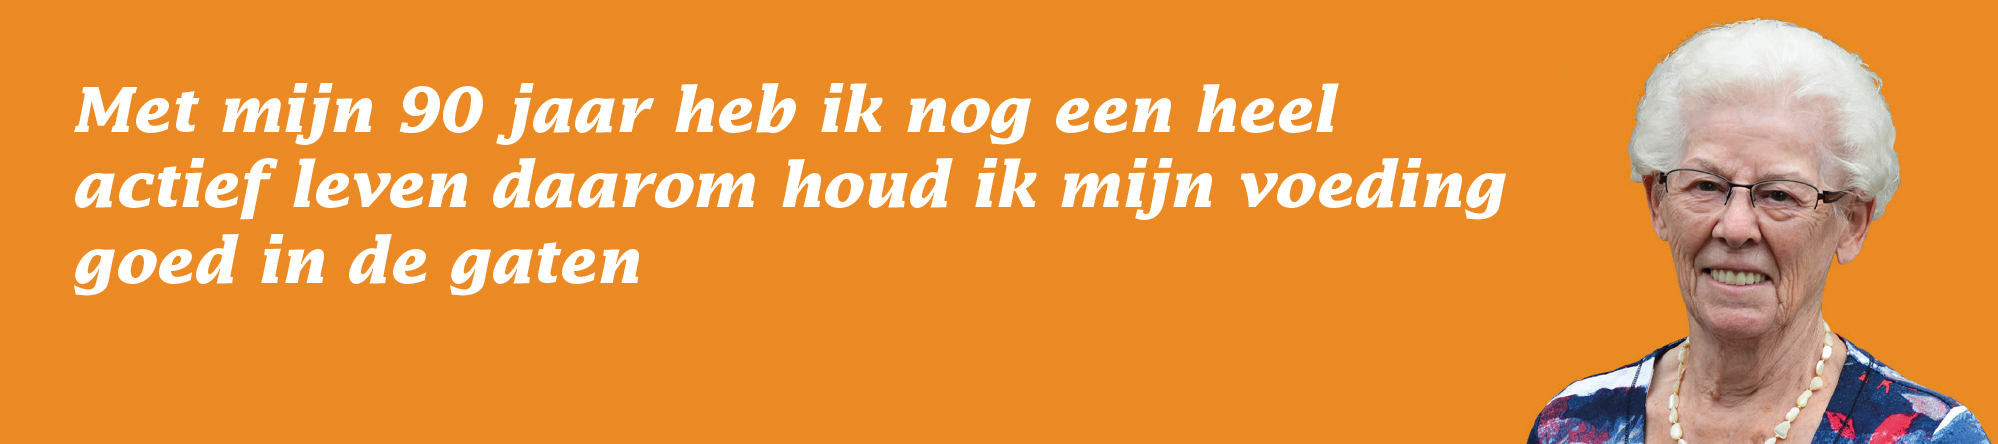 https://de-dietist.nl/wp-content/uploads/2016/09/de-dietist-quote-oma.jpg